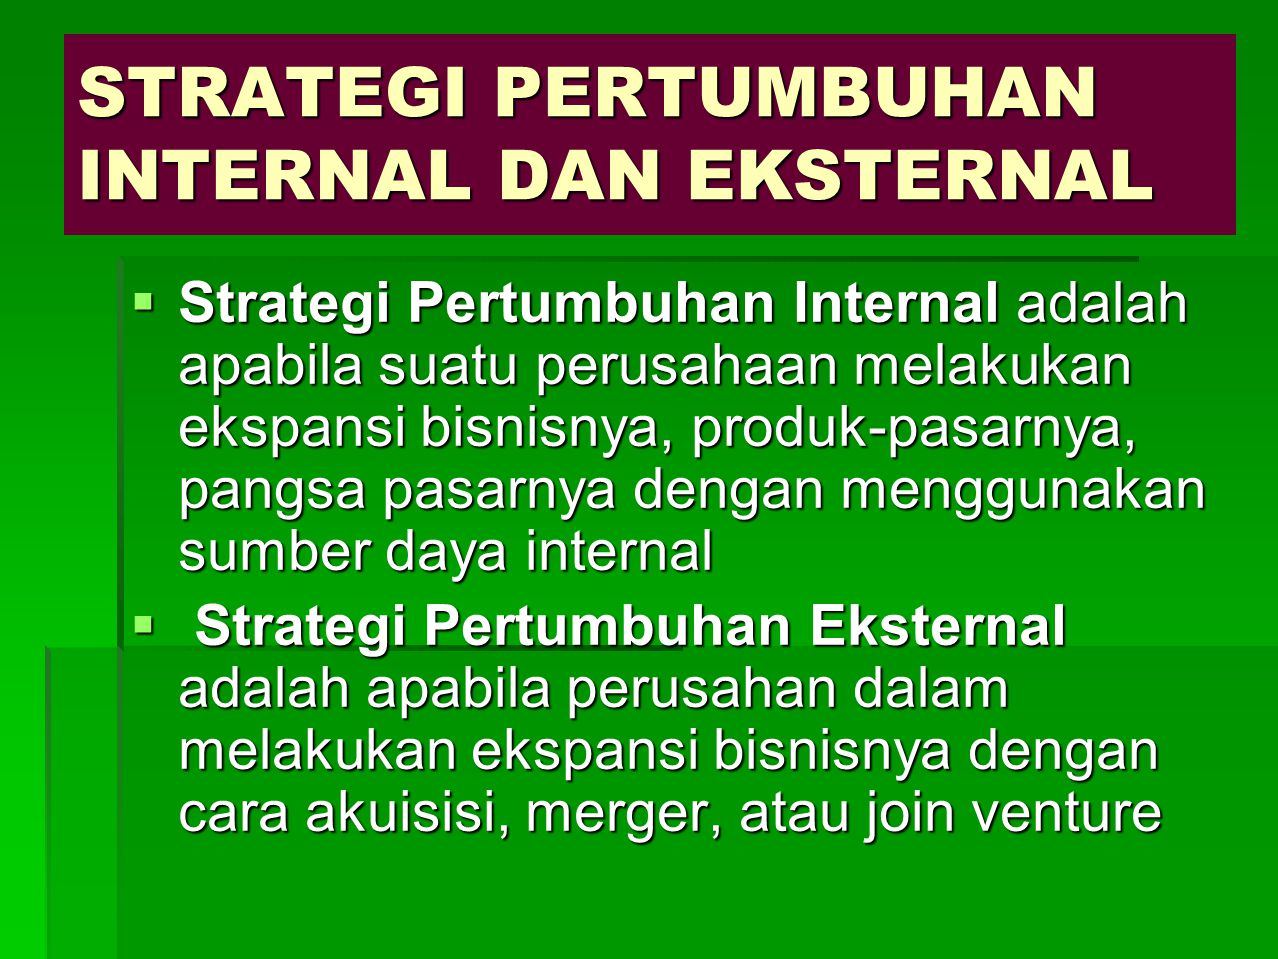 STRATEGI PERTUMBUHAN INTERNAL DAN EKSTERNAL